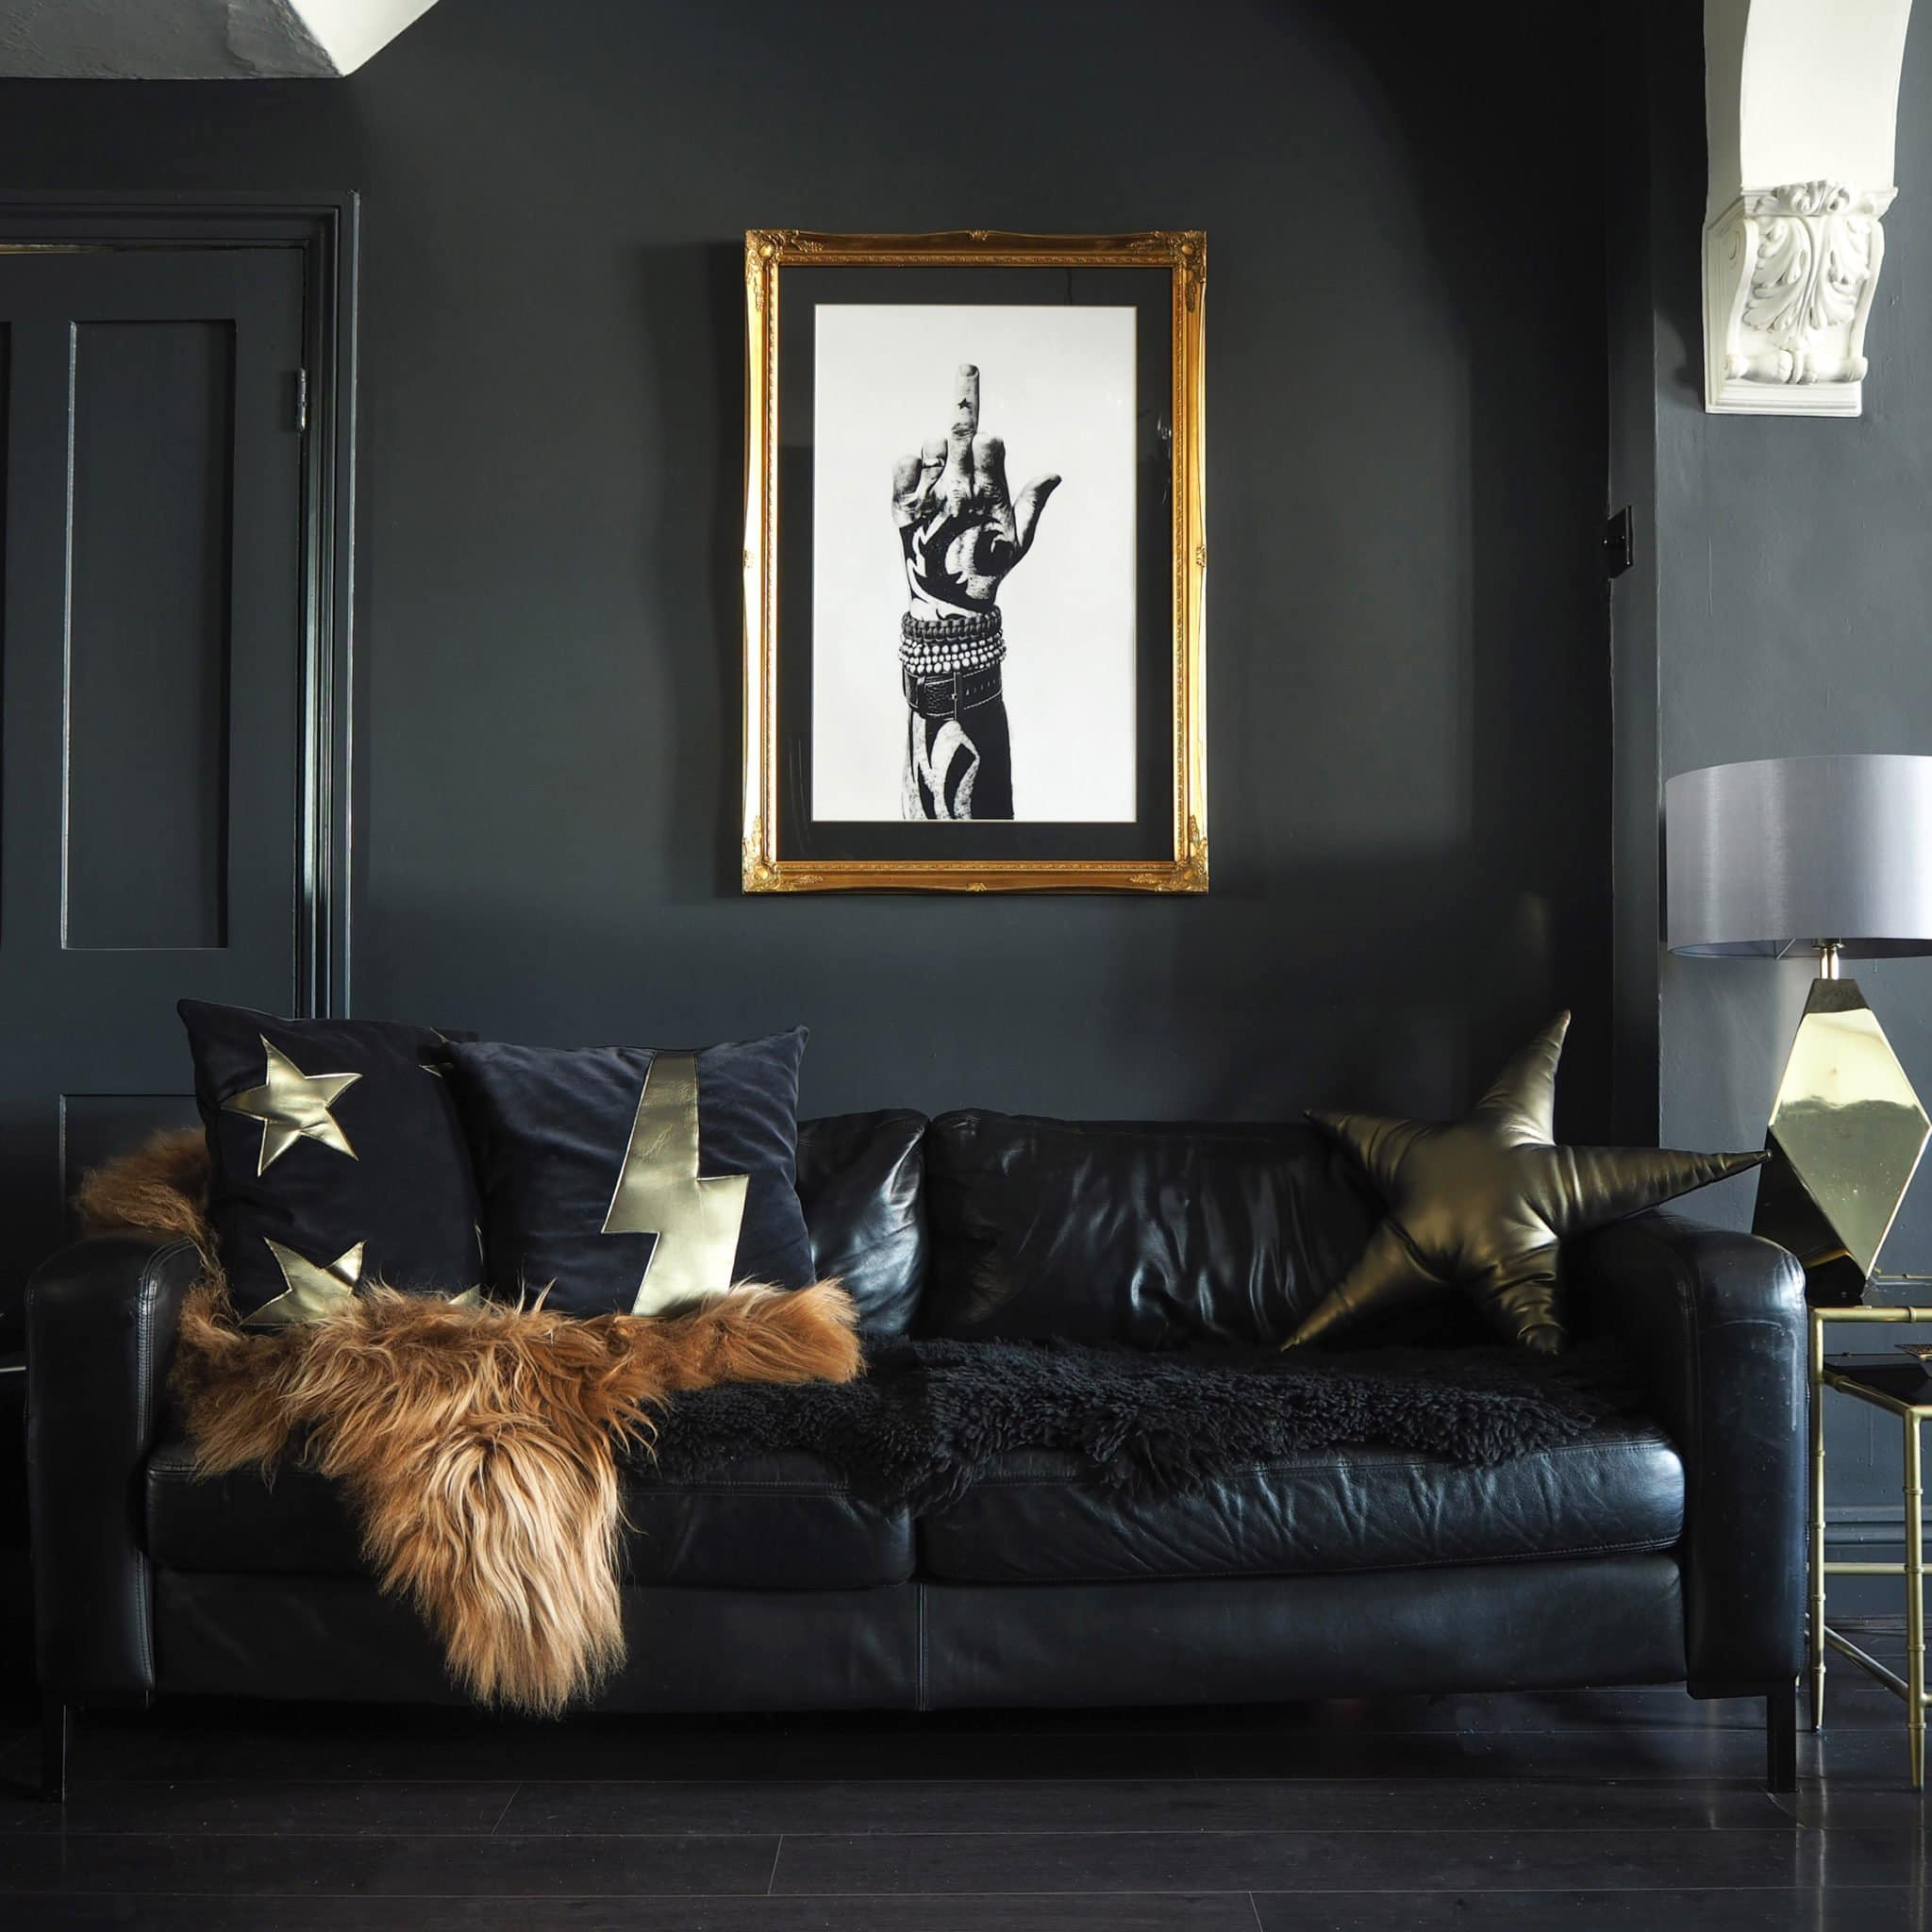 The Broke Person's Guide To Decorating!